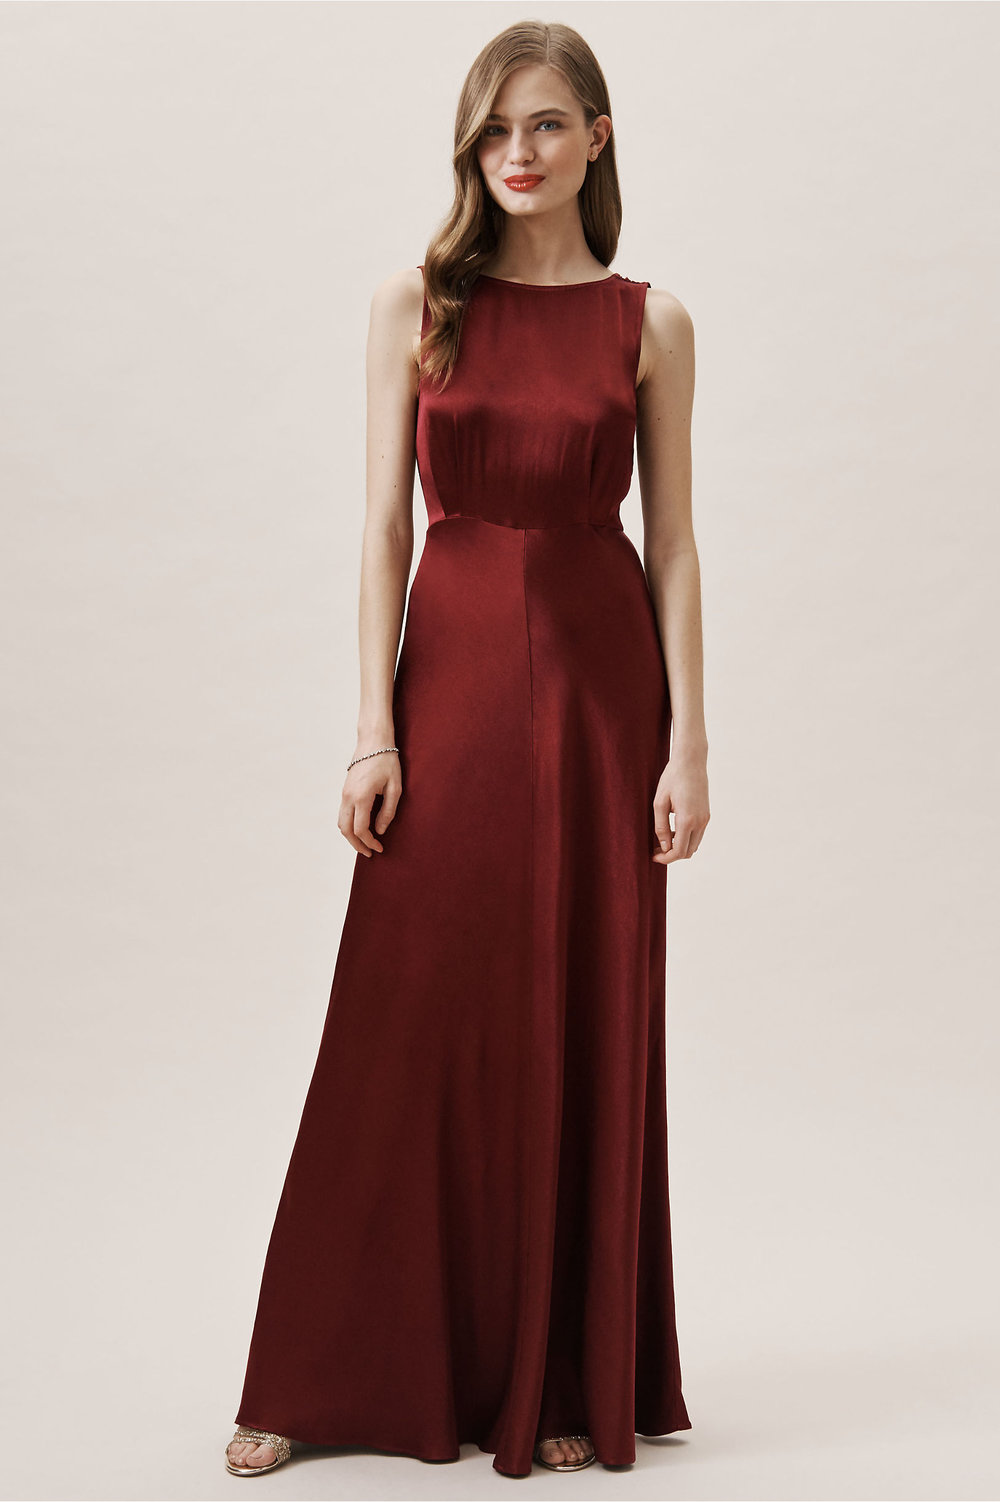 alexia red wine dress bhldn spring 2019 wedding collection